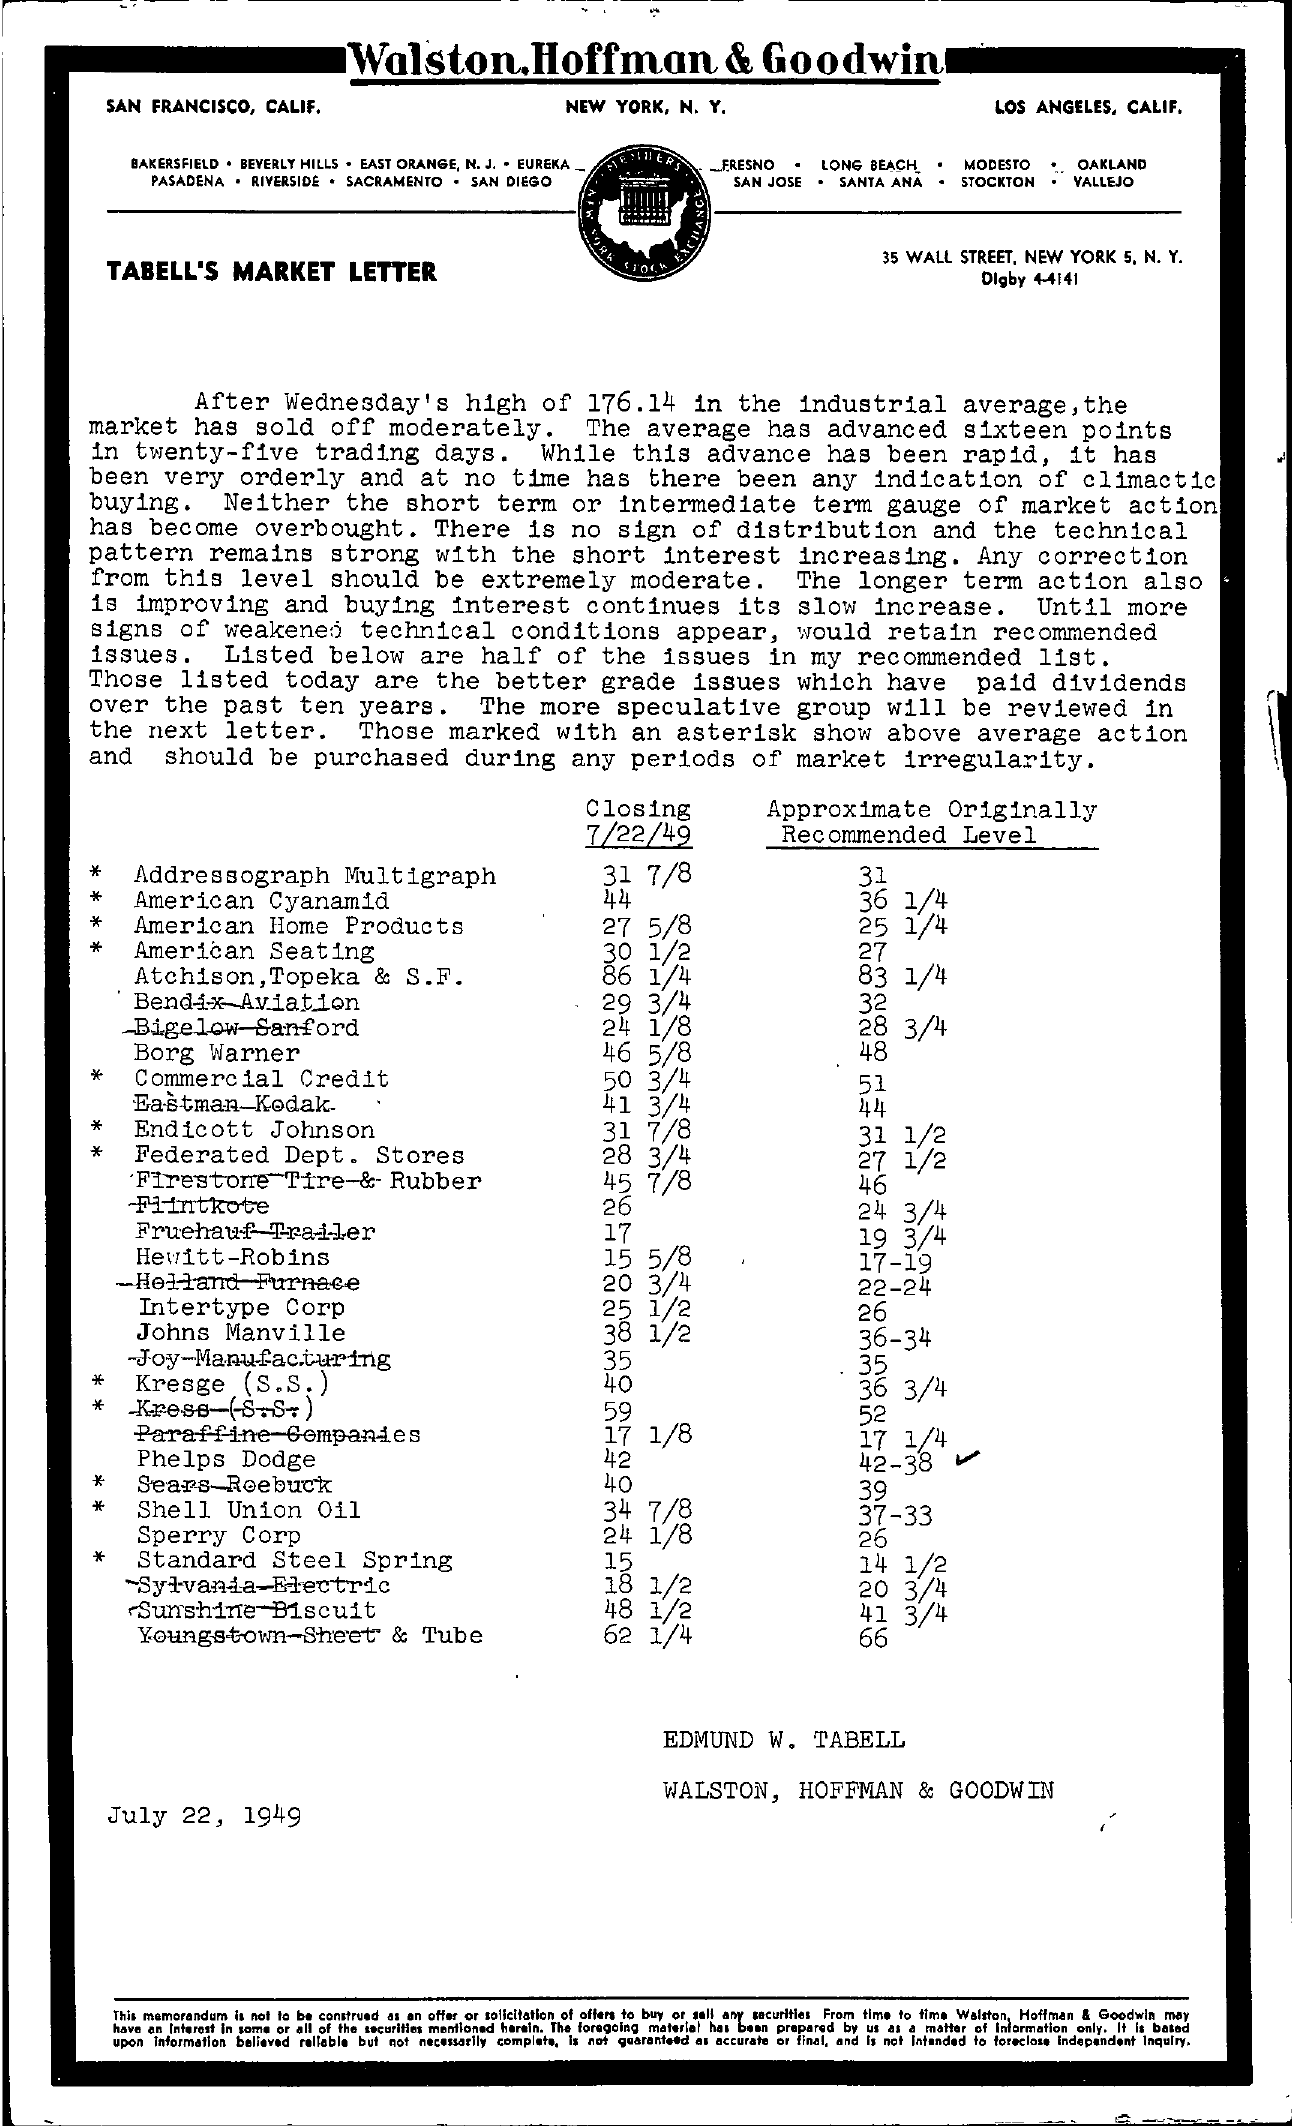 Tabell's Market Letter - July 22, 1949